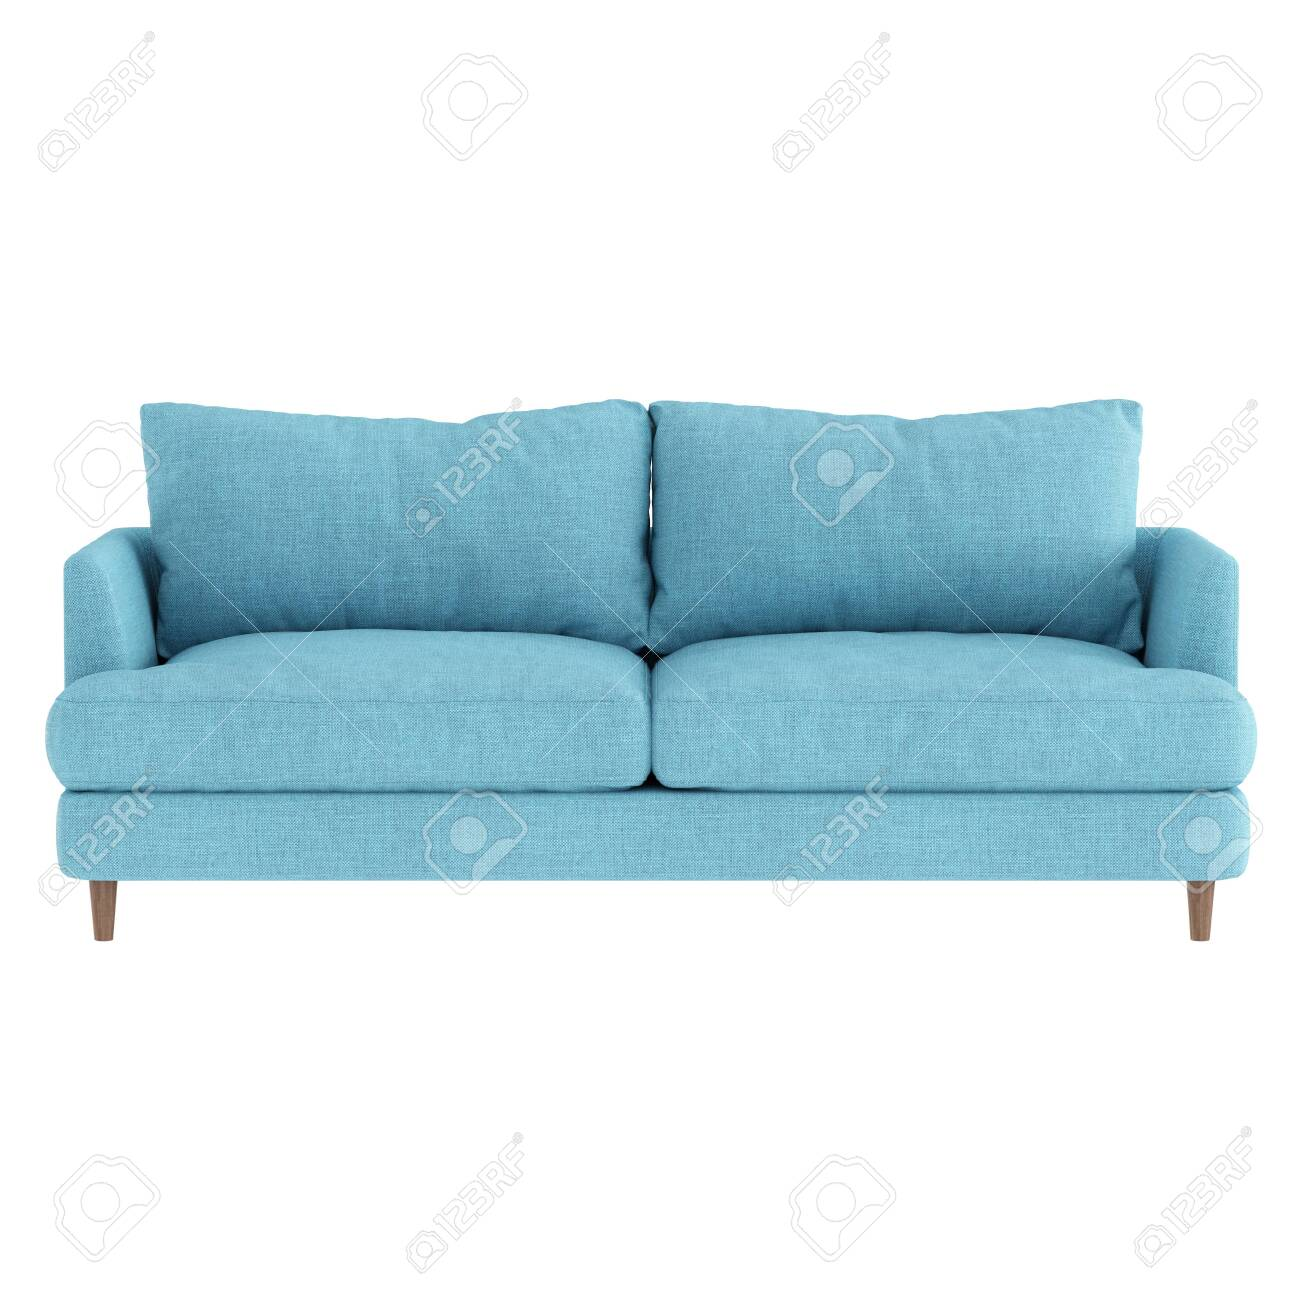 Soft Blue Fabric Sofa On Wooden Legs On A White Background Front Stock Photo Picture And Royalty Free Image Image 137974150